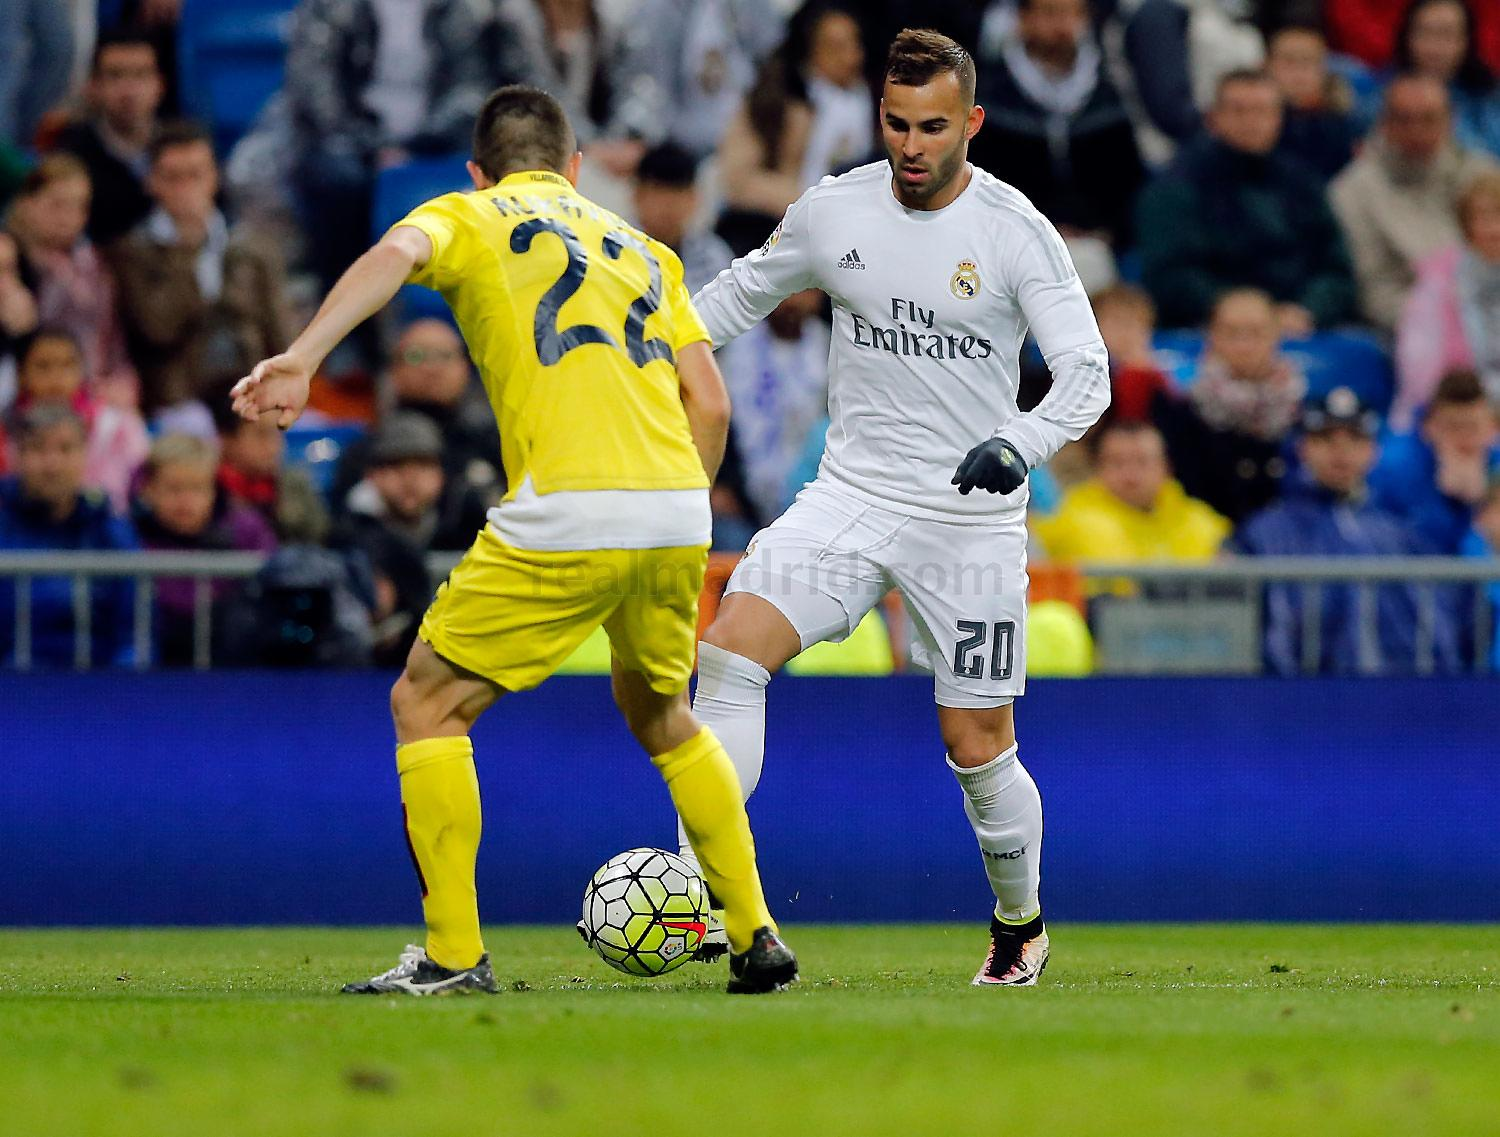 Real Madrid - Real Madrid - Villarreal - 21-04-2016